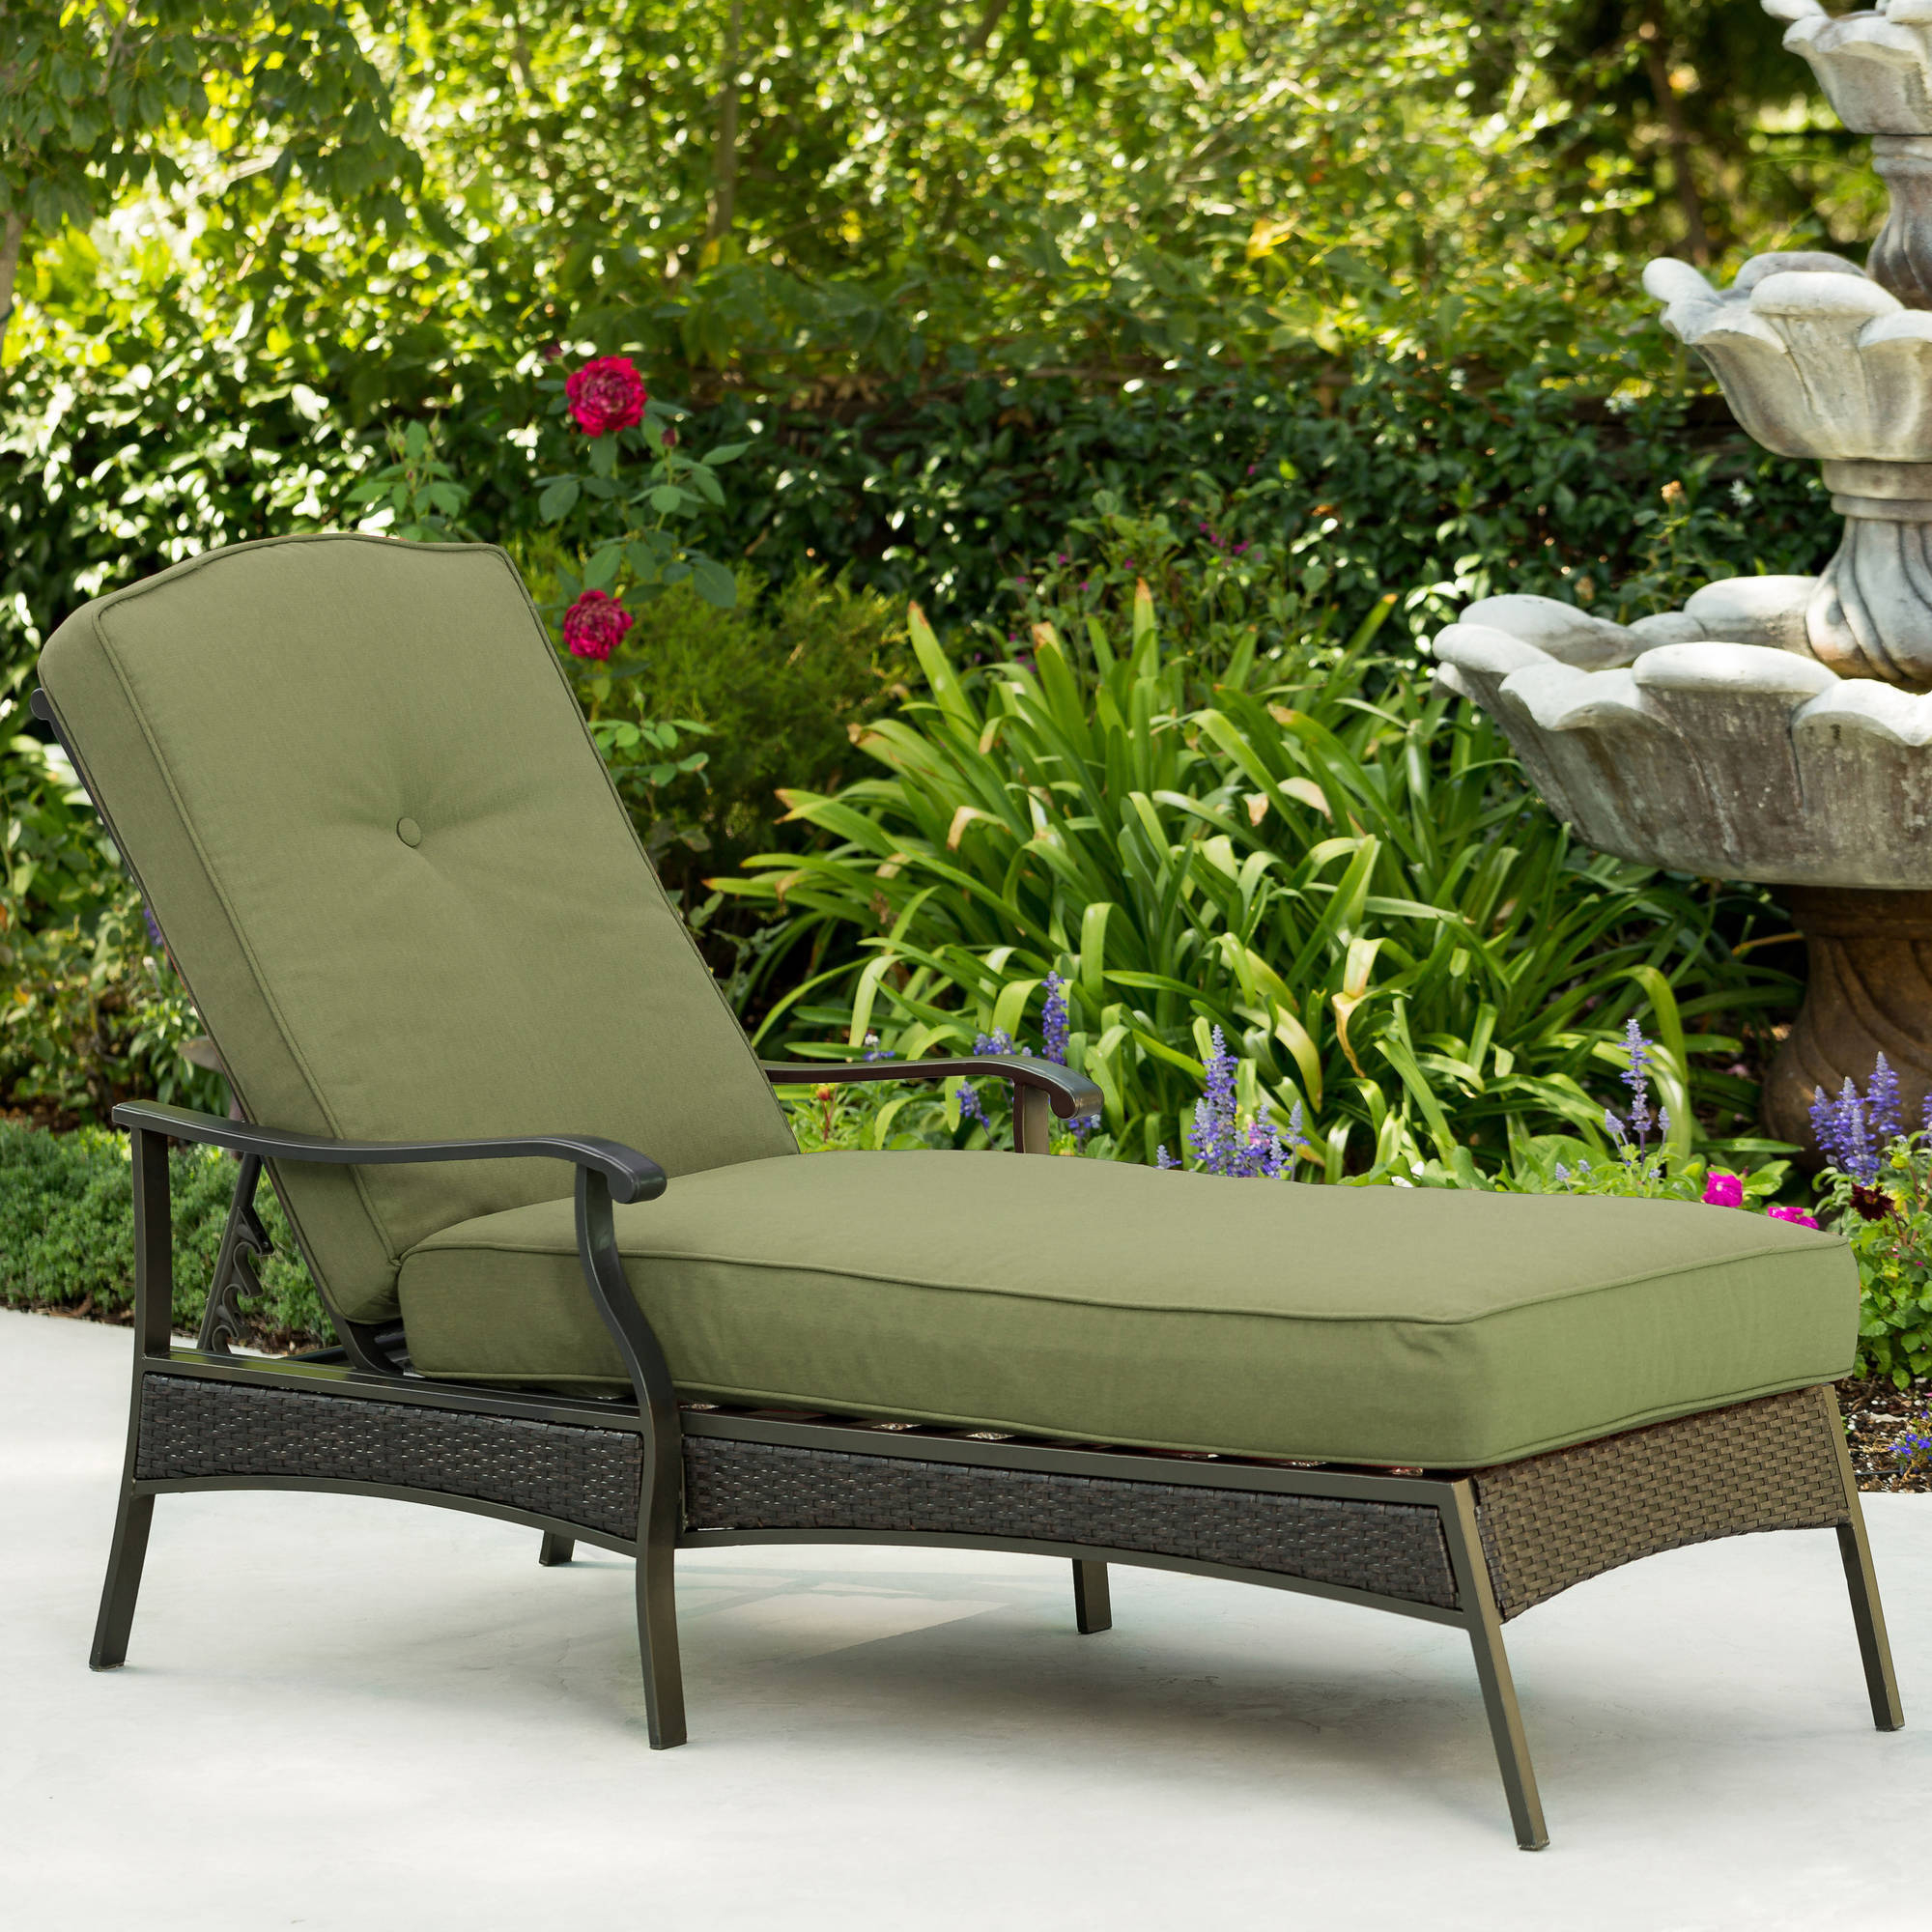 Most Recently Released Better Homes & Gardens Providence Outdoor Chaise Lounge, Green – Walmart Regarding Wood Blue And White Cushion Outdoor Chaise Lounge Chairs (Gallery 11 of 25)